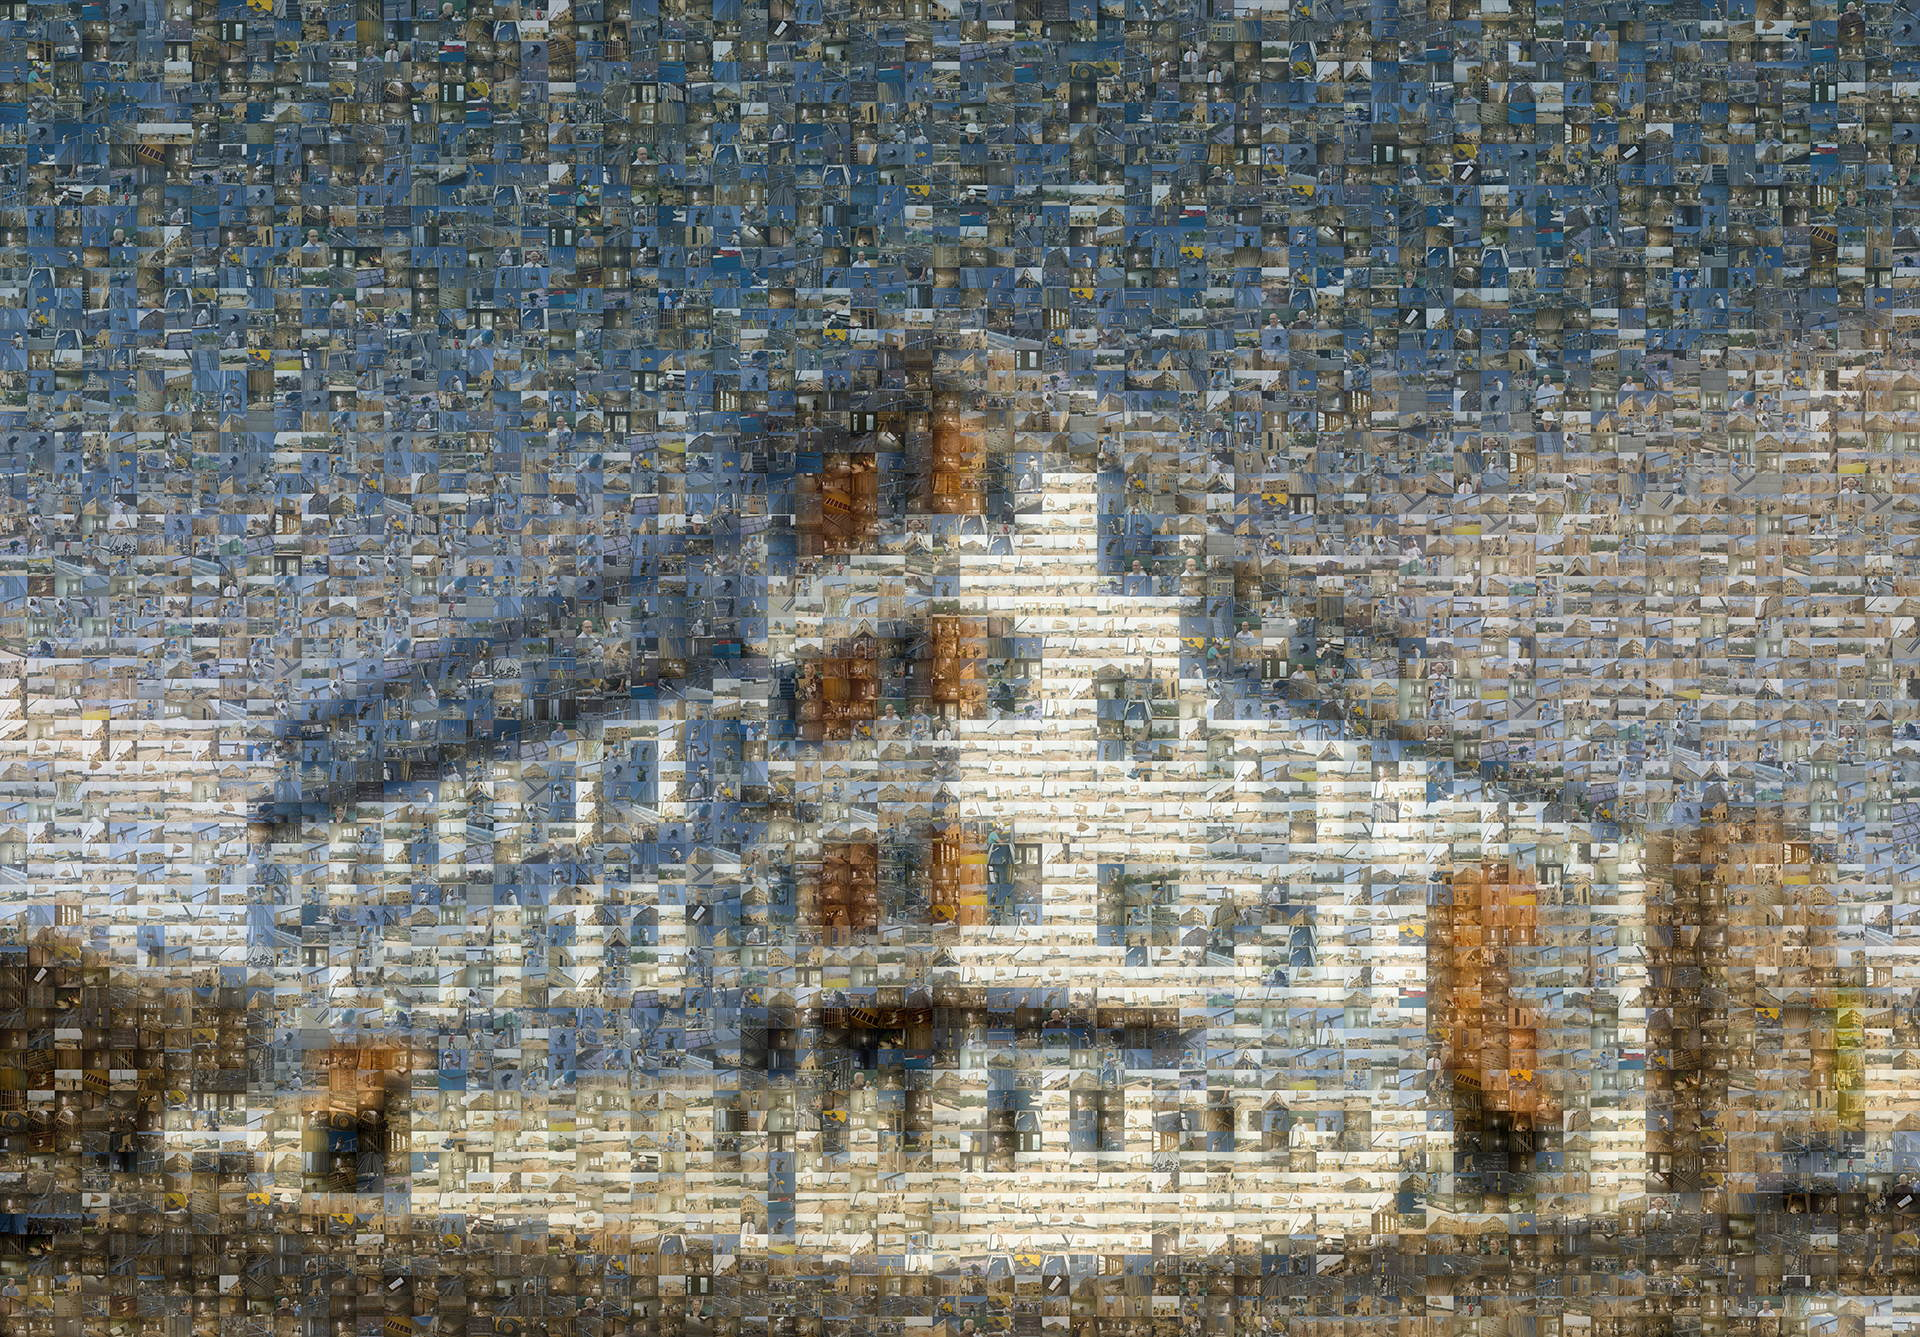 photo mosaic created using 1150 photos of the building being constructed